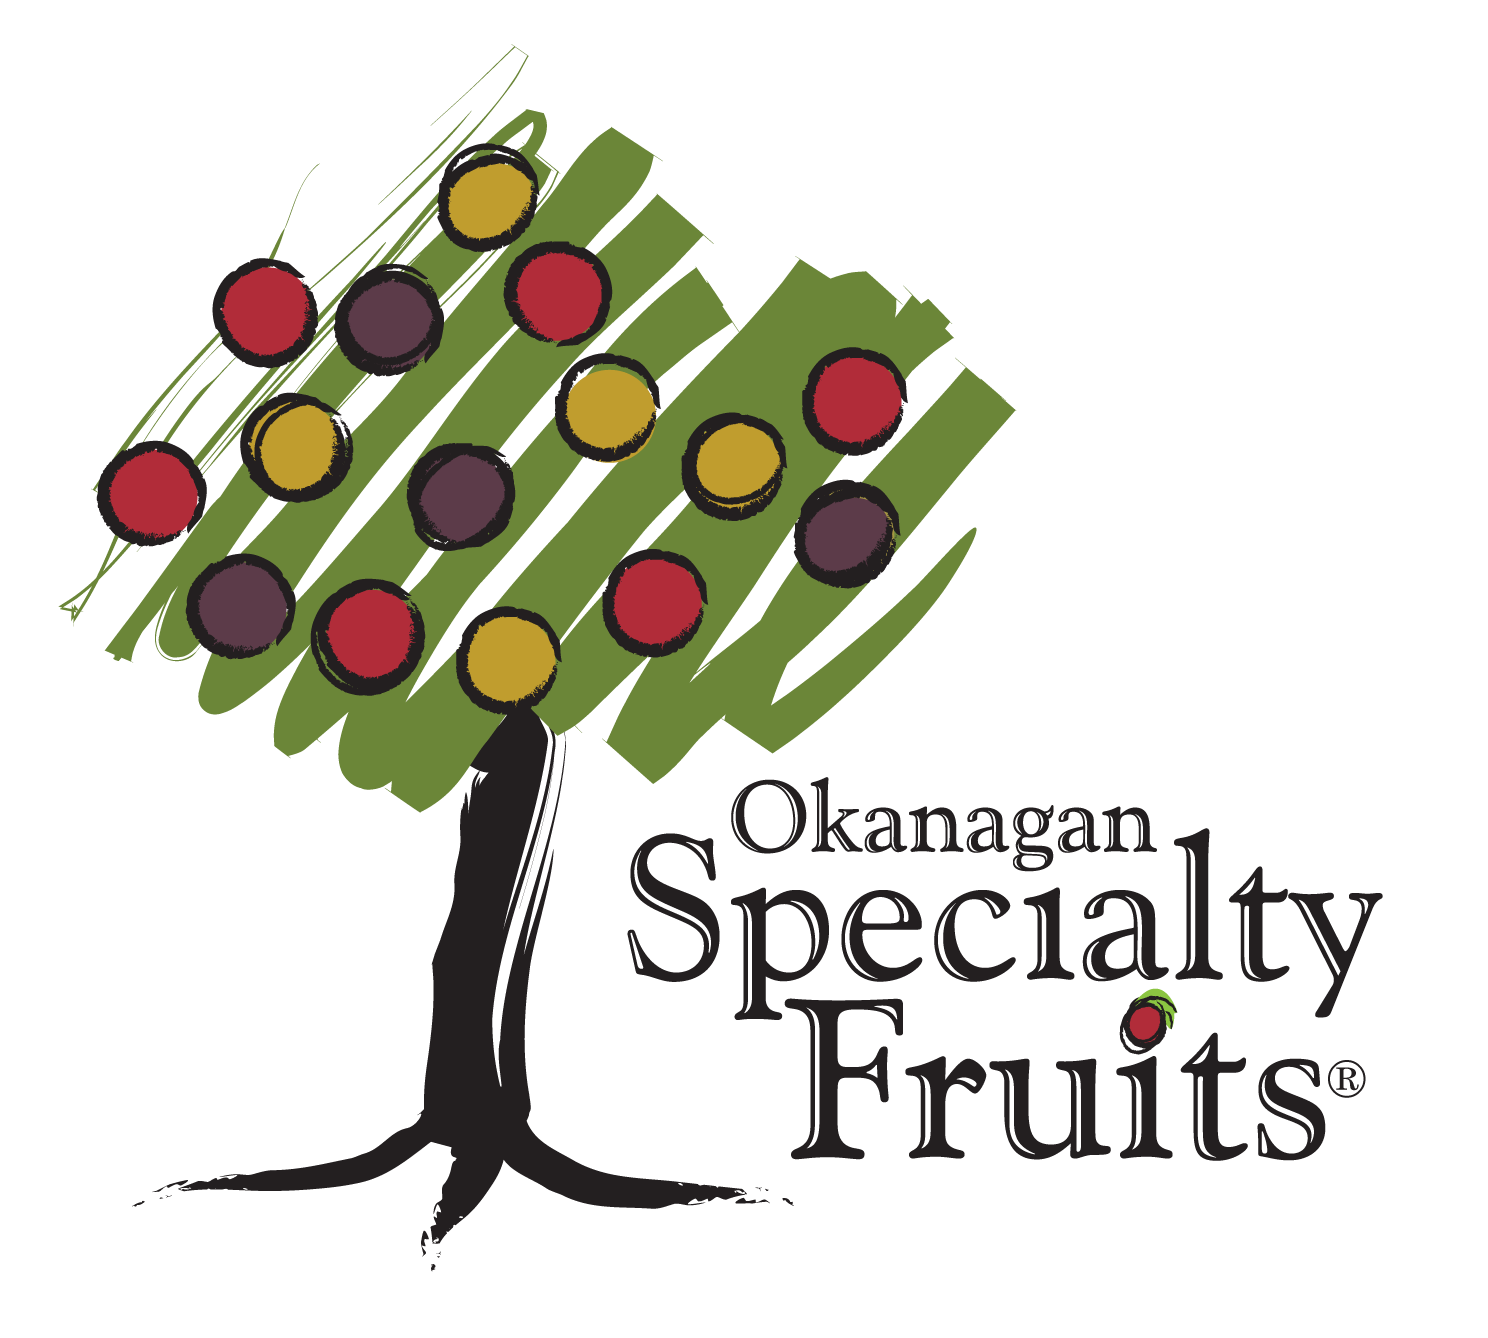 Apple seedling clipart banner library stock Here We Grow Again! Now Hiring: Plant Tissue Culture Technician - OK ... banner library stock